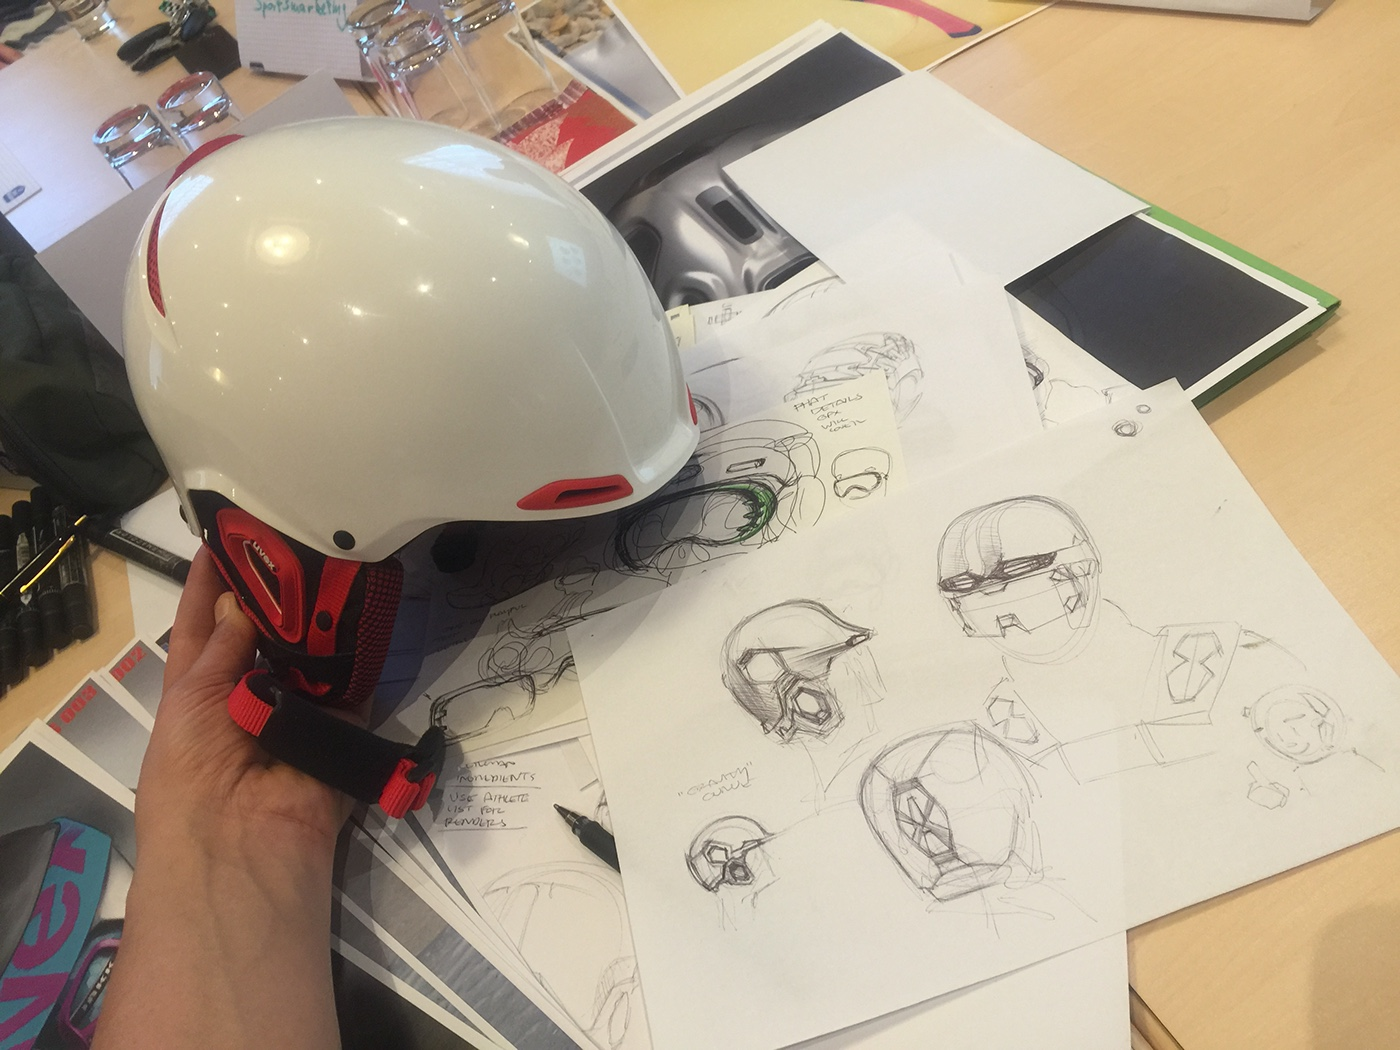 Noah Sussman Sports Product designer Uvex sports sketching helmet